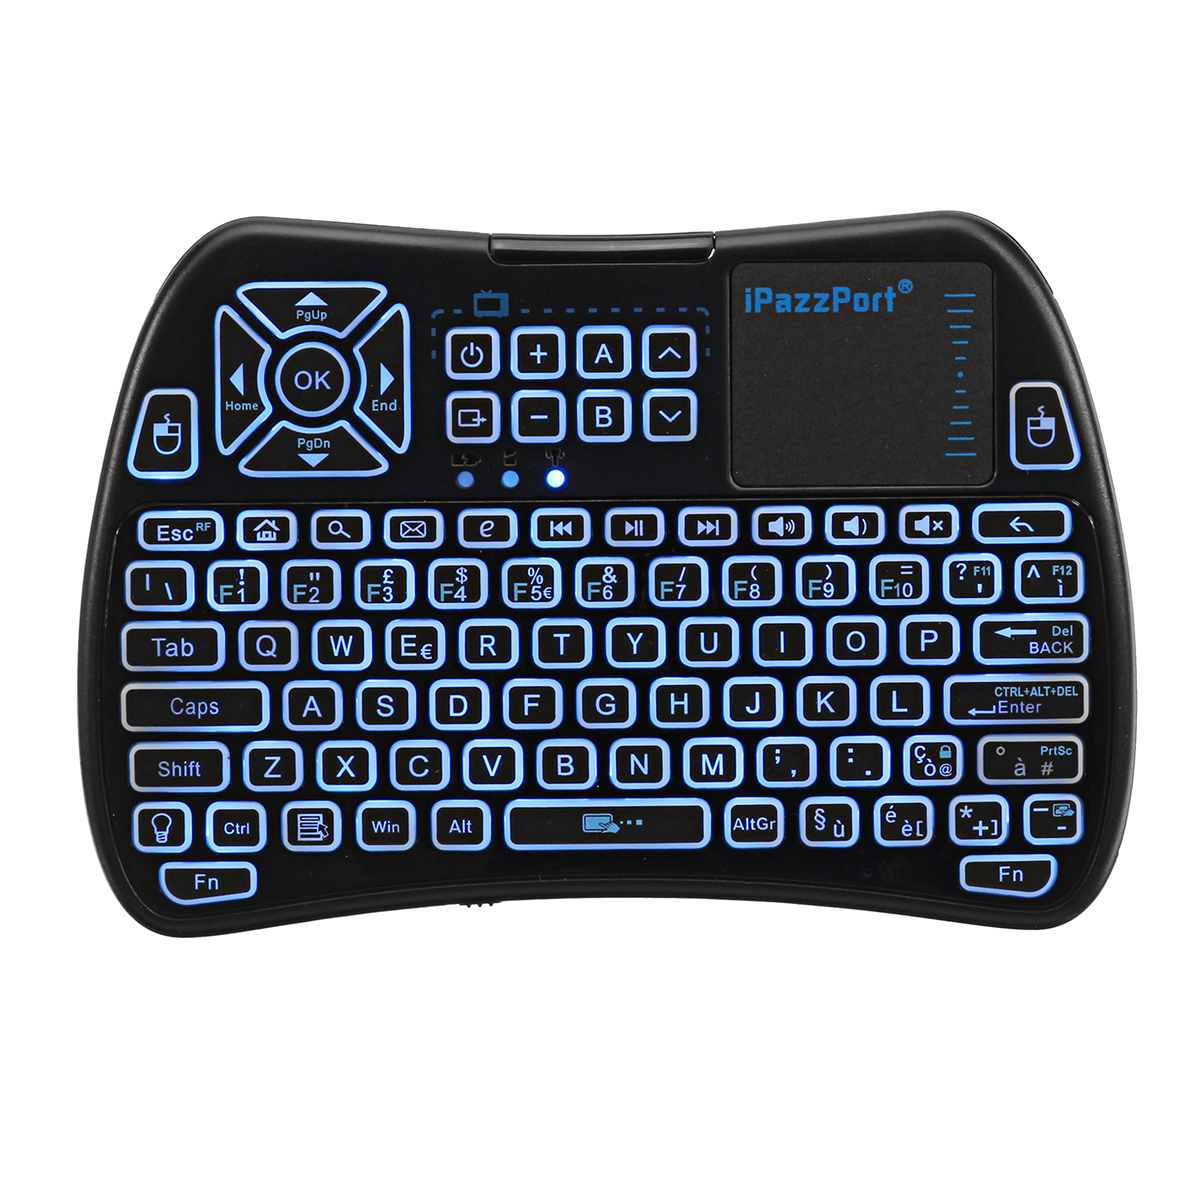 iPazzPort KP-810-61-RGB Italian Three Color Backlit Mini Keyboard Touchpad Airmouse